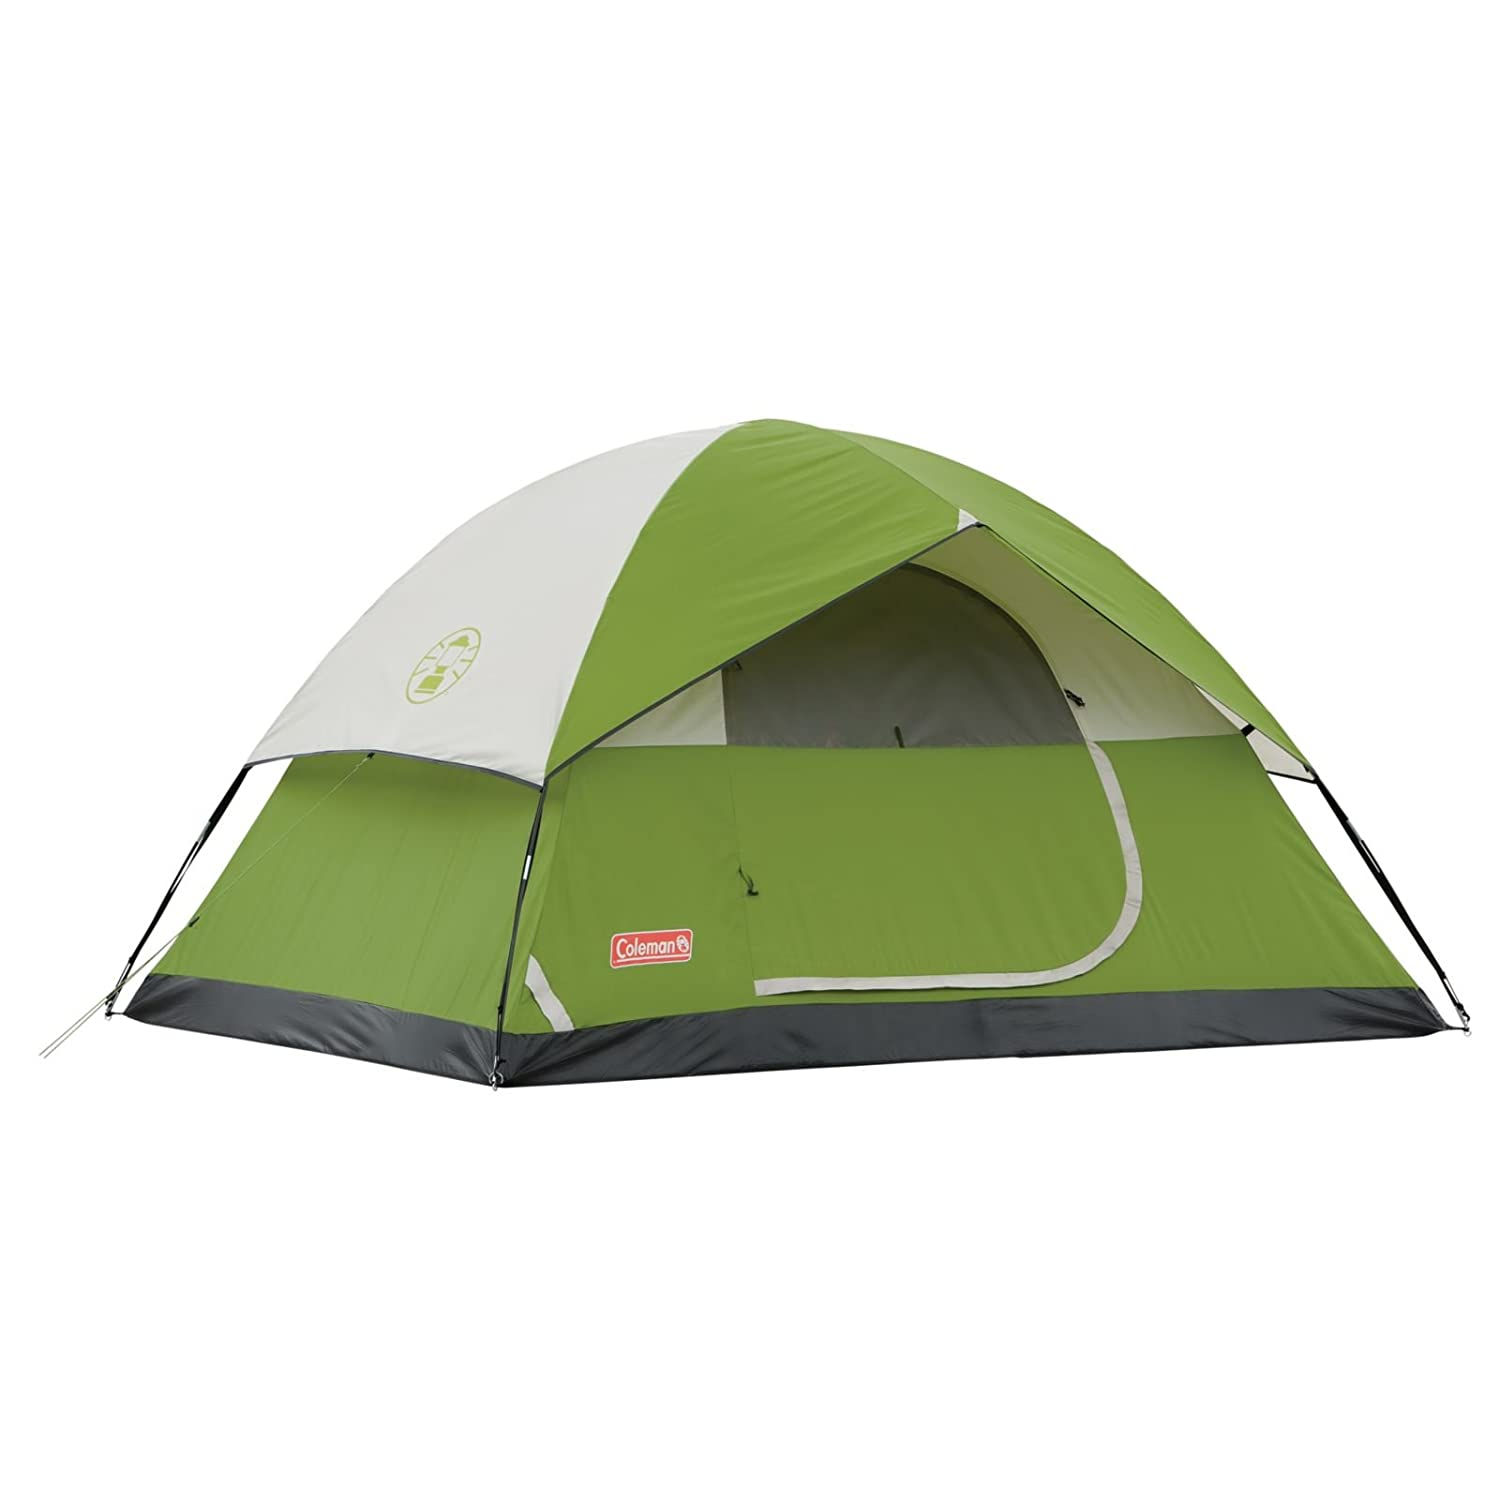 Sundome 4 Person Tent  sc 1 st  Amazon.com & Camping Tents | Amazon.com